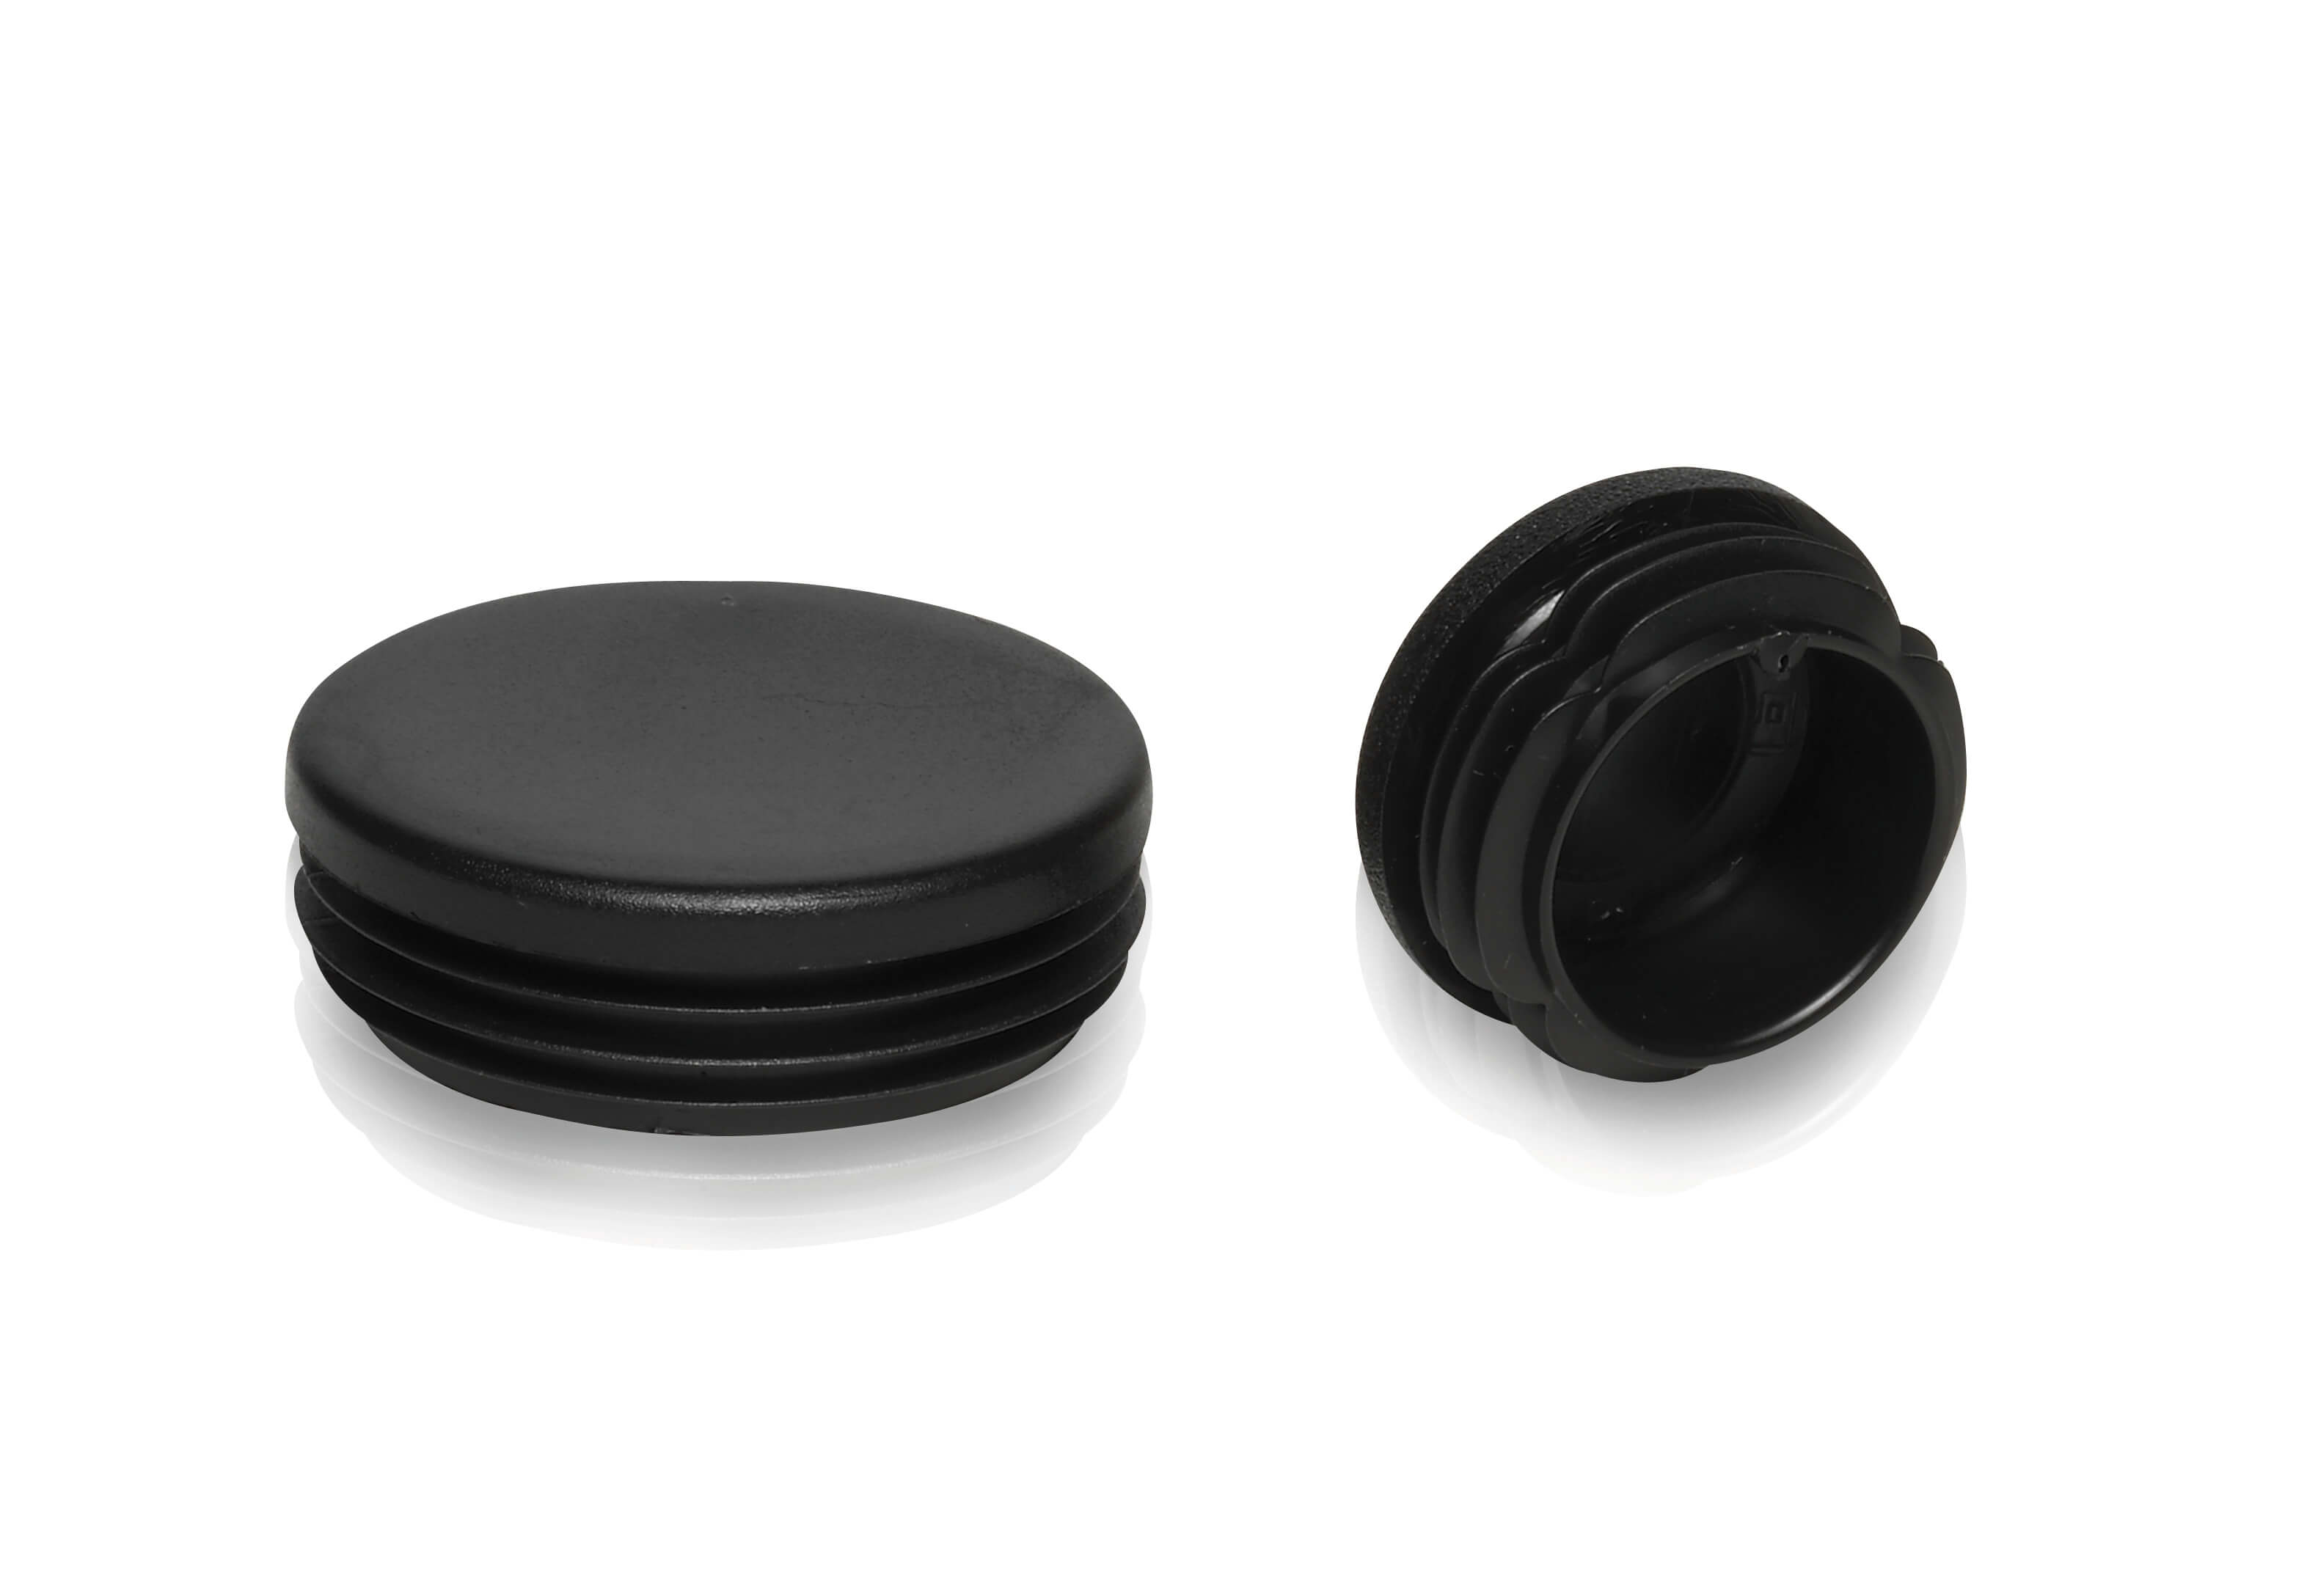 H 530 Finned Plugs